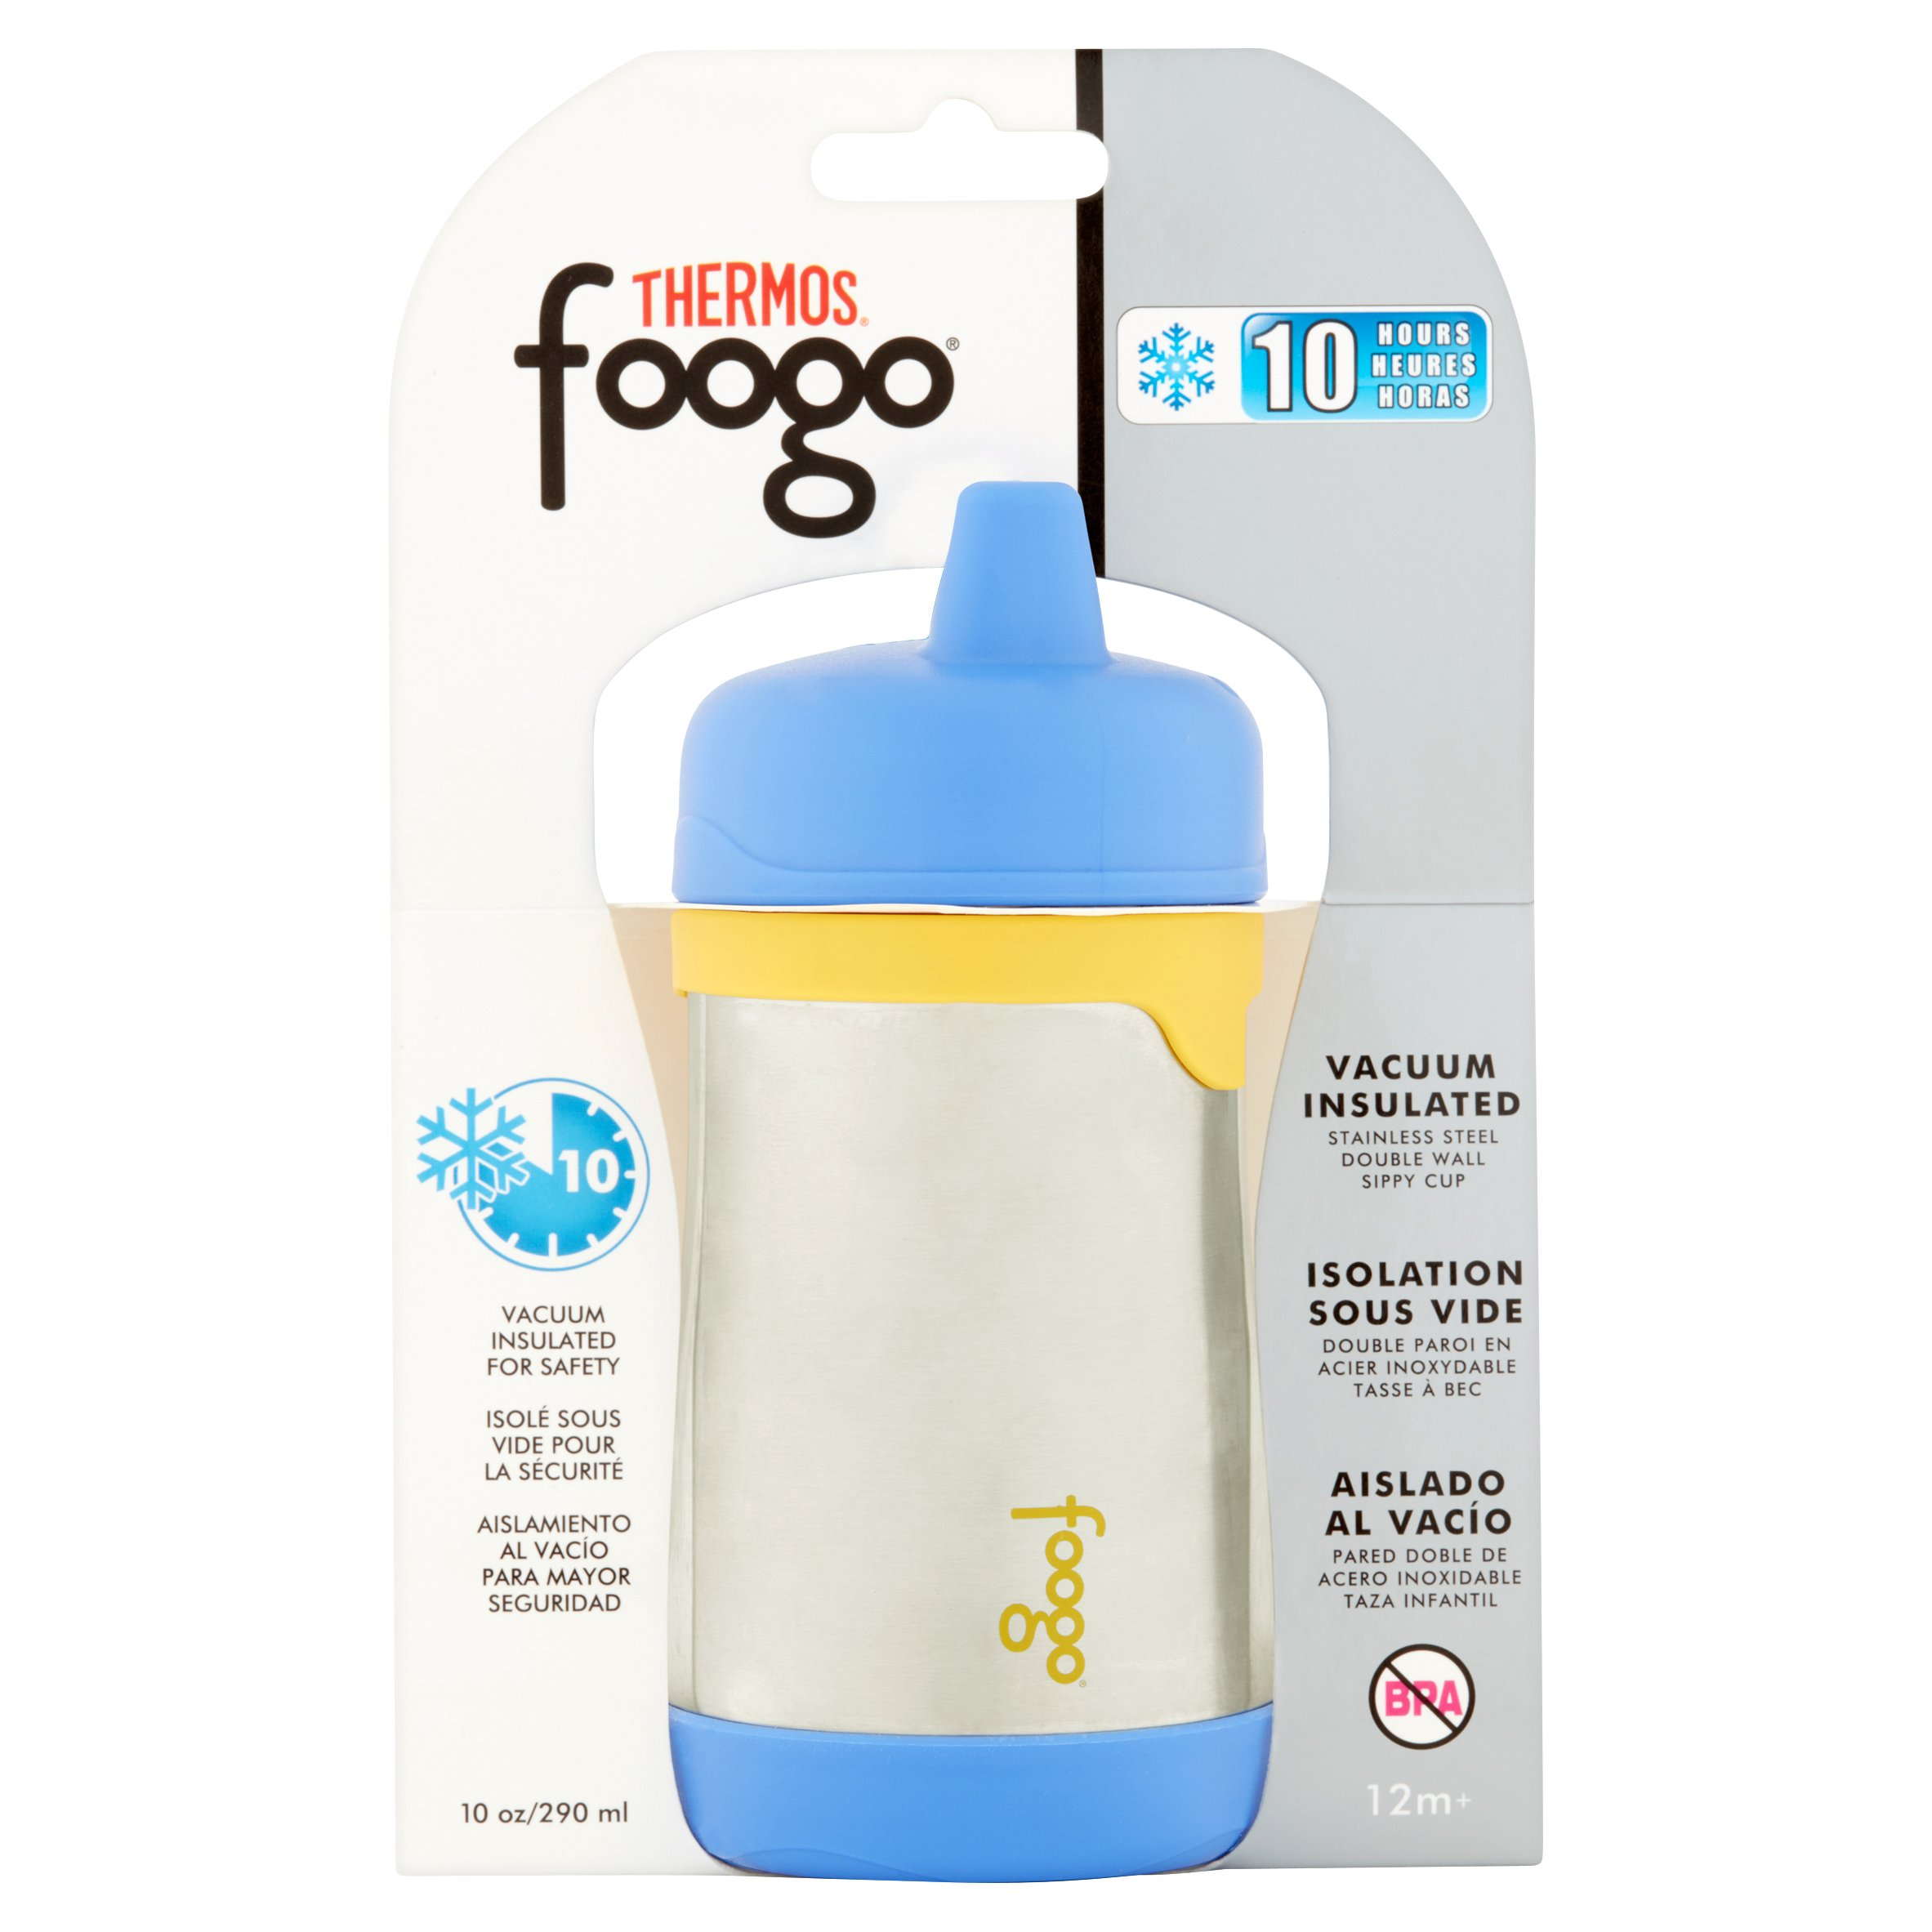 Thermos Foogo Vacuum Insulated Hard Spout Sippy Cup Stainless Steel by FOOGO